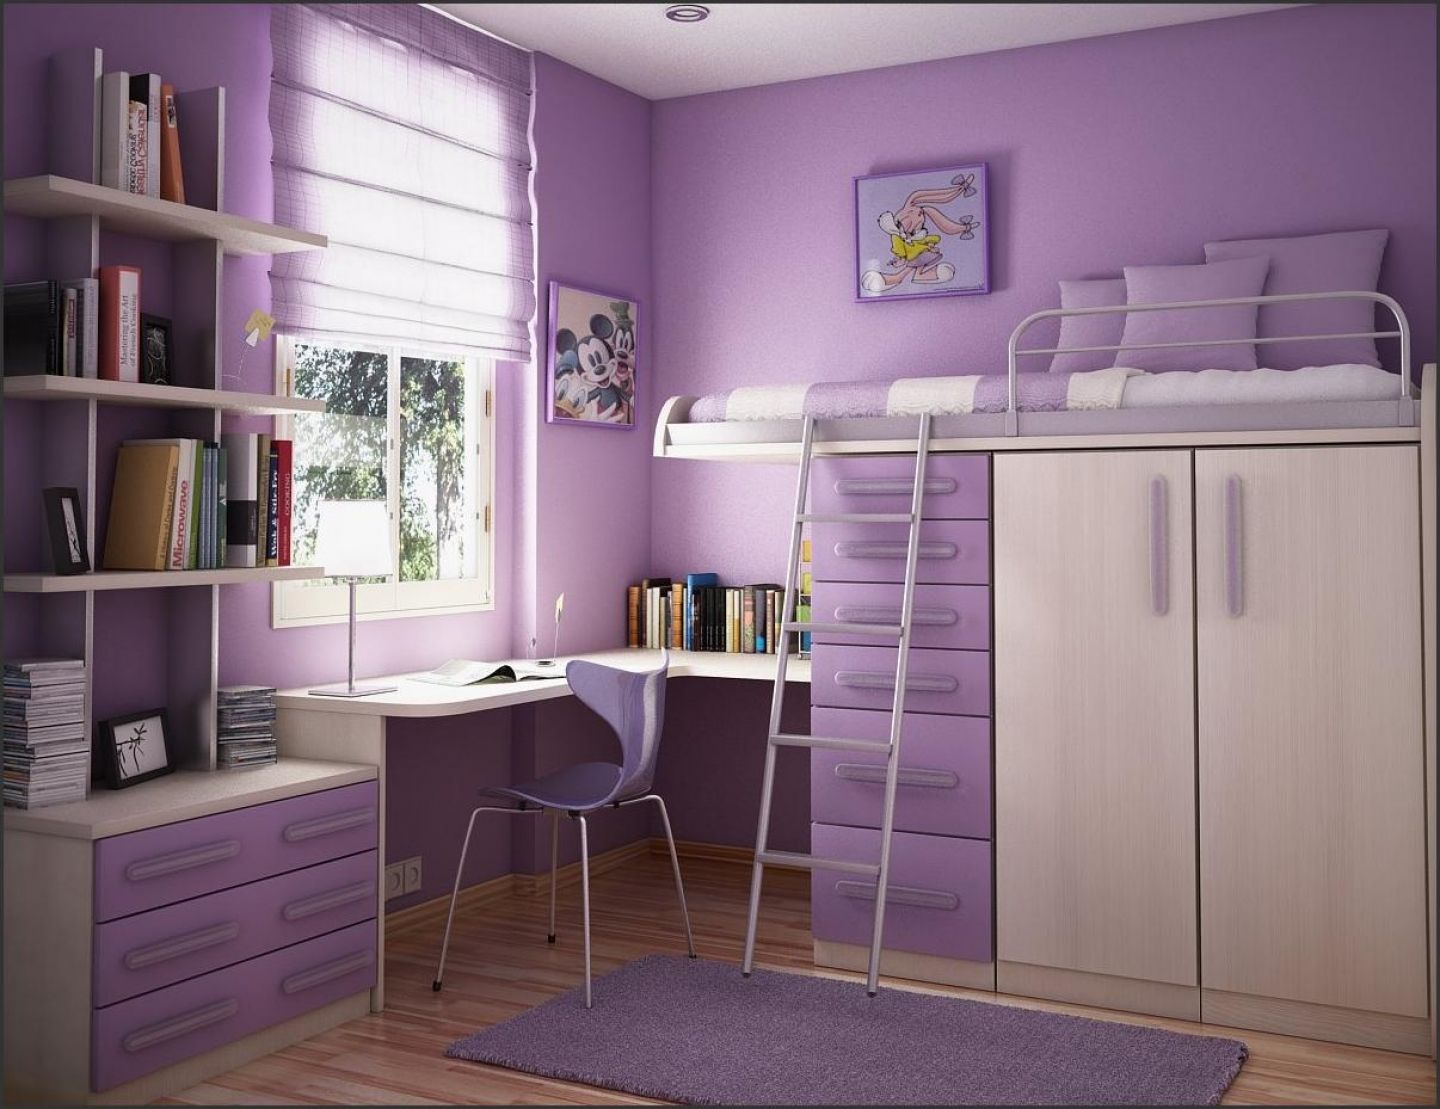 Room Design Ideas For Girl top girly bedroom inspiration tumblr on bedroom ideas with classic girly bedroom 24 adorable room design ideas for little girls Teen Girl Bedroom Decorating Ideas 06 13 1403